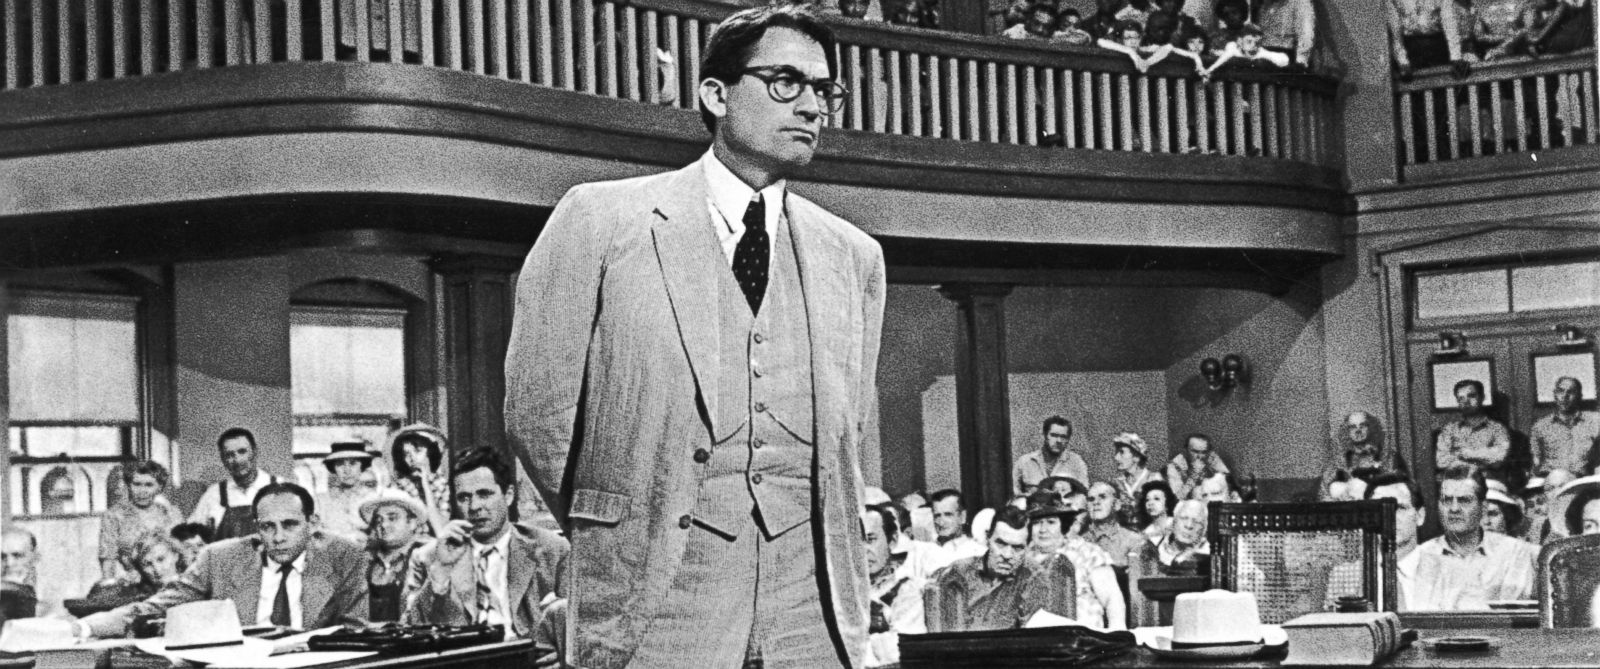 prejudice and racism in american society as shown in harper lees to kill a mockingbird To kill a mockingbird gave many americans a moral compass of sorts as they   readers a sharp jolt about their own prejudices and world view of race  will  continue to shape hong kong politics and society  a man is seen against an  electronic board showing stock information at a brokerage house in.